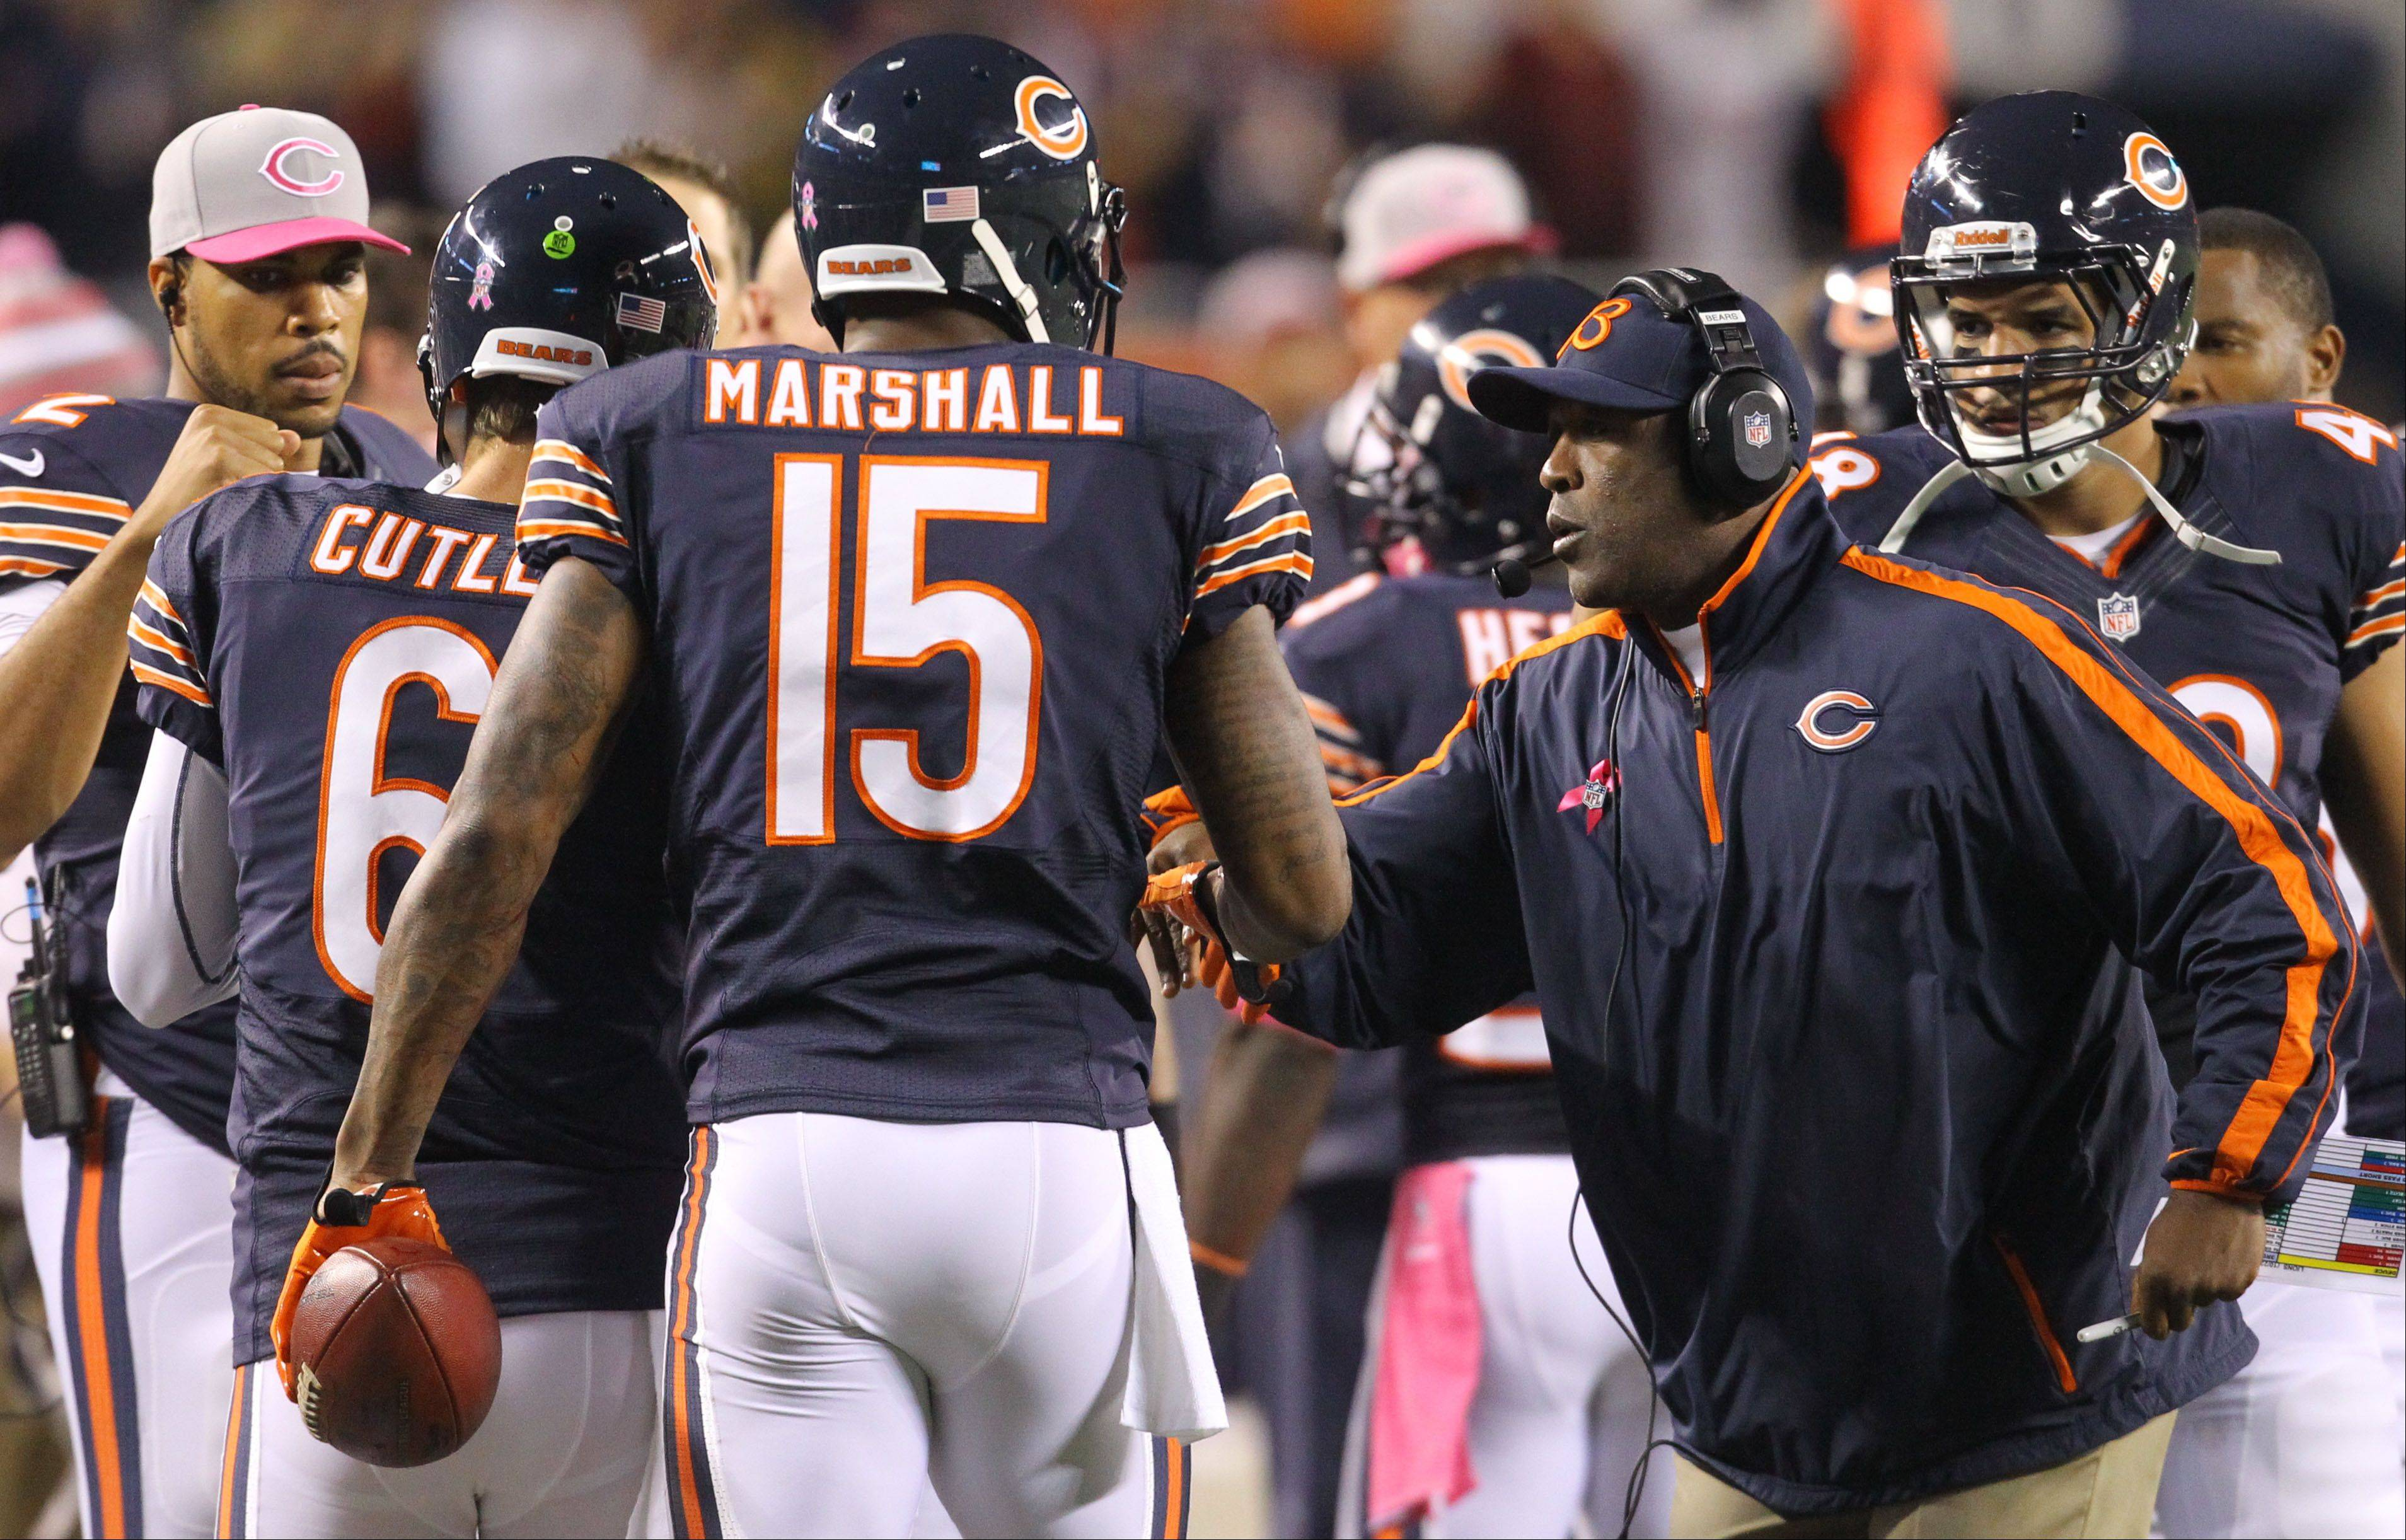 Chicago Bears coach Lovie Smith congratulates Jay Cutler and Brandon Marshall after they connected for a first half touchdown .